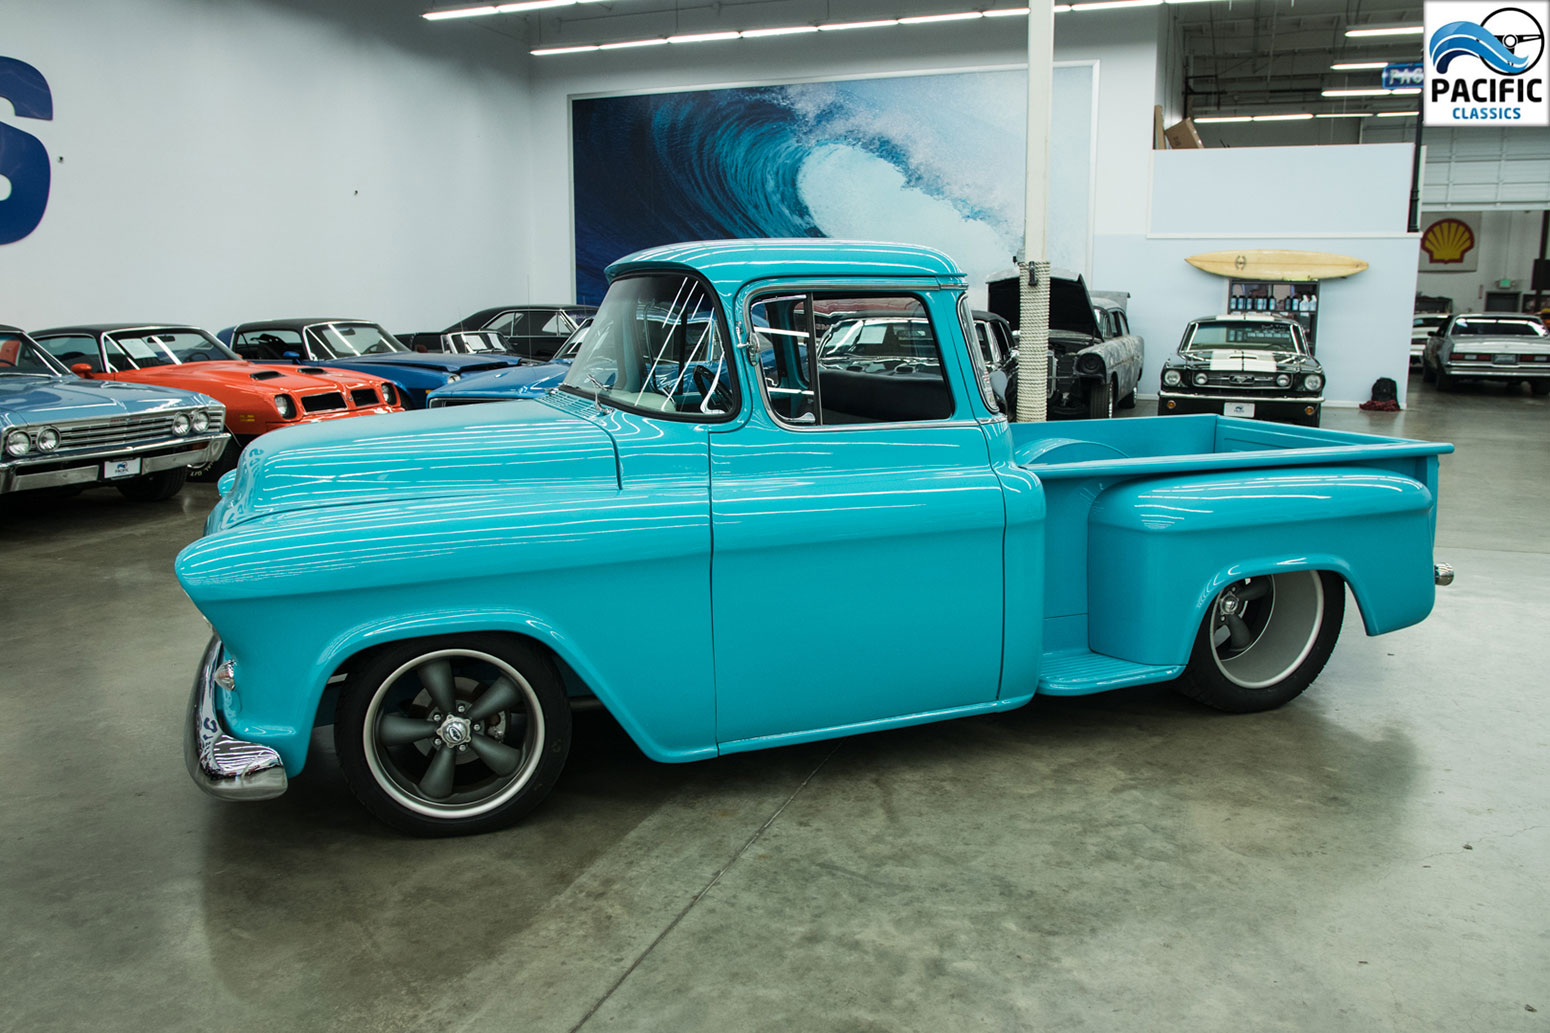 1955 Chevrolet Short Box PU With Big Back Window